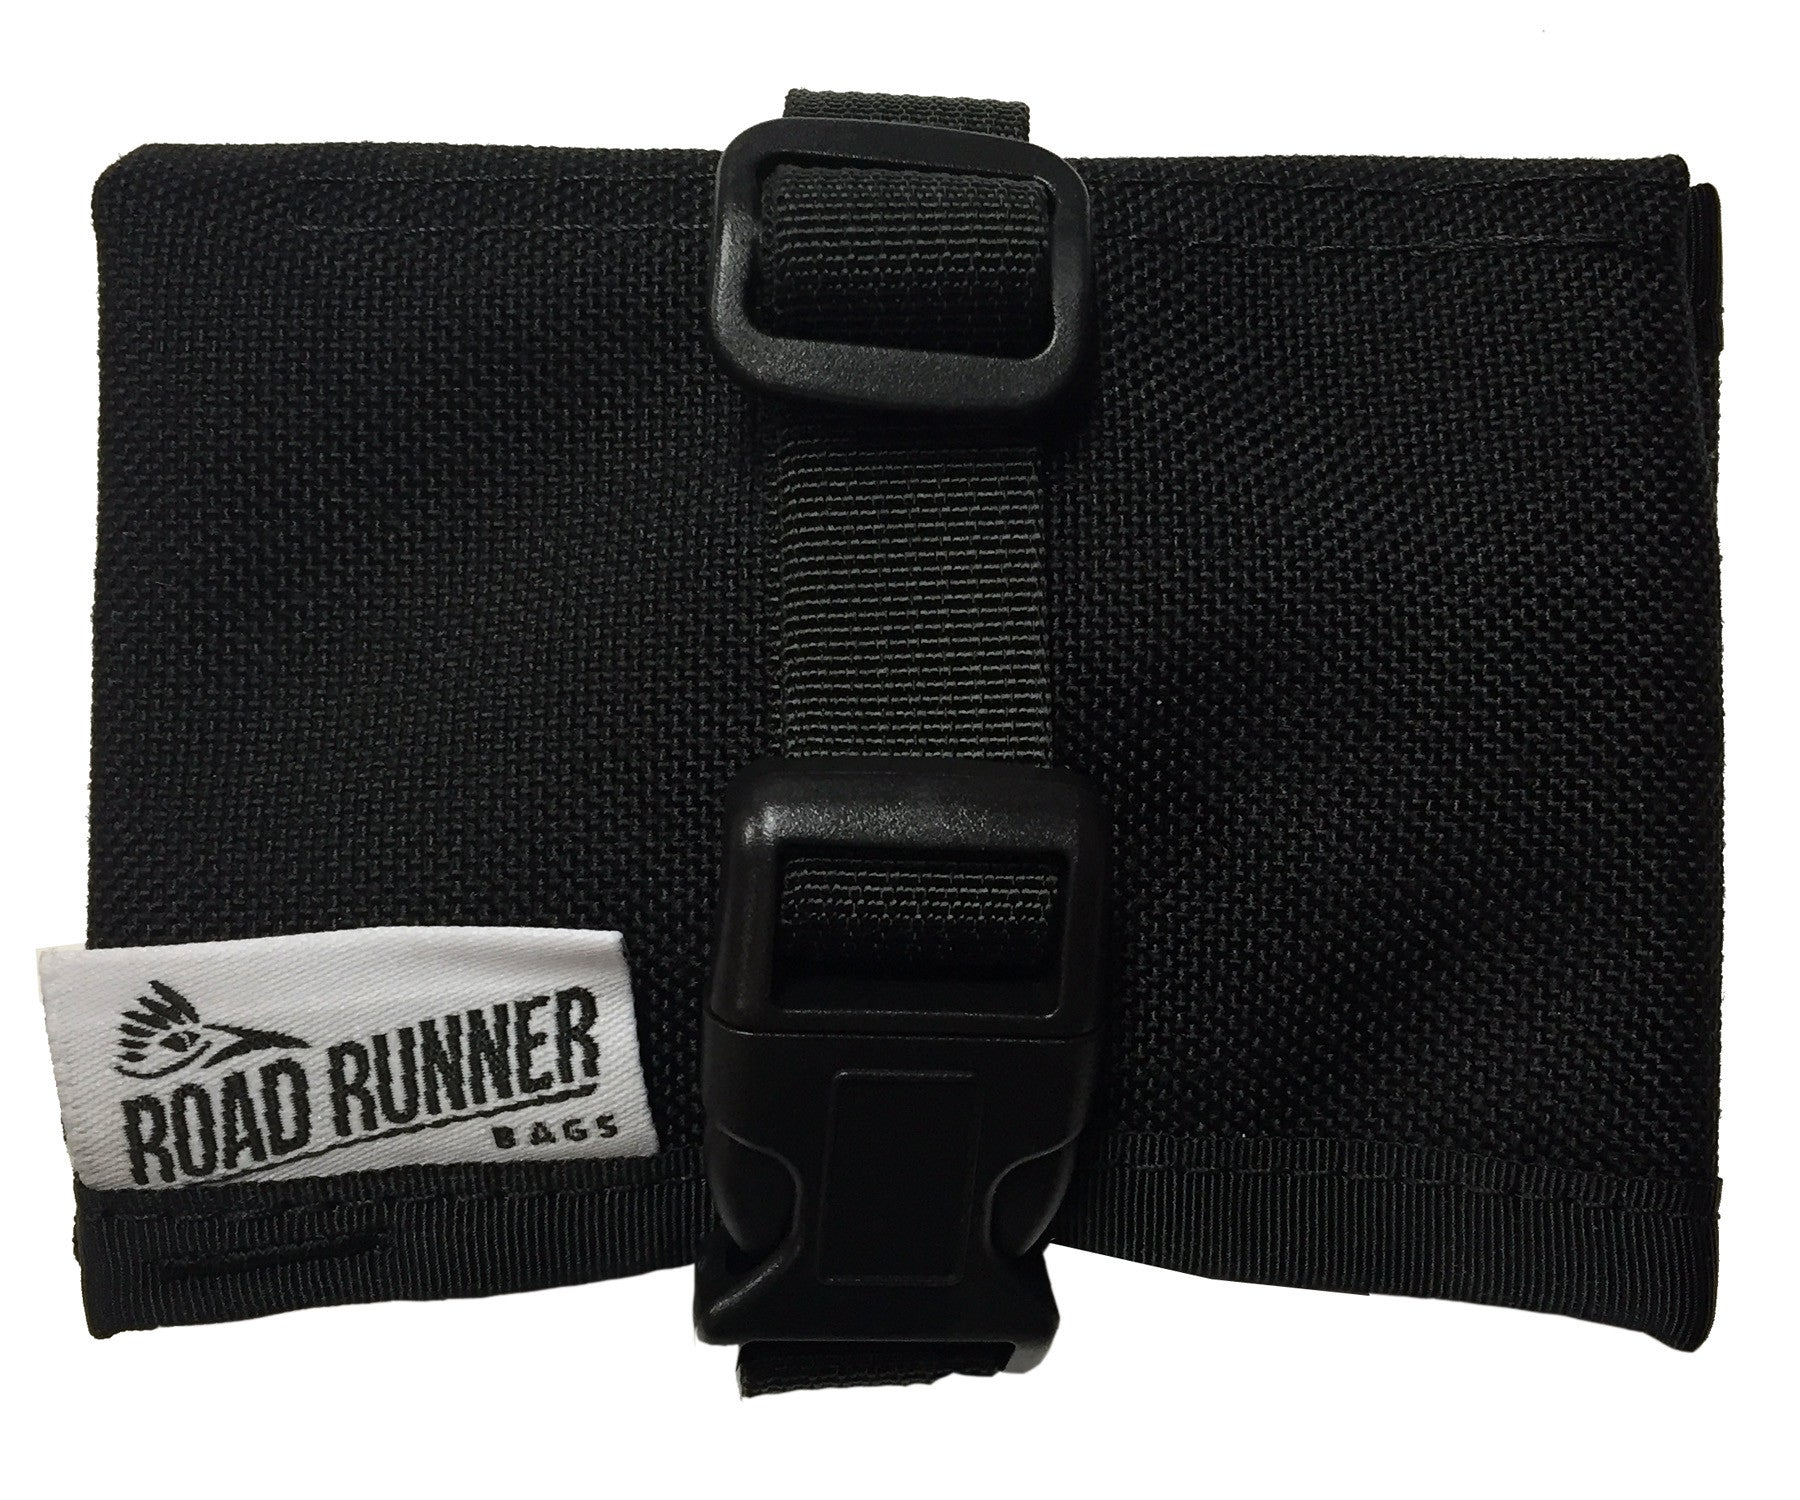 Road Runner Tool/Saddle roll - Retrogression